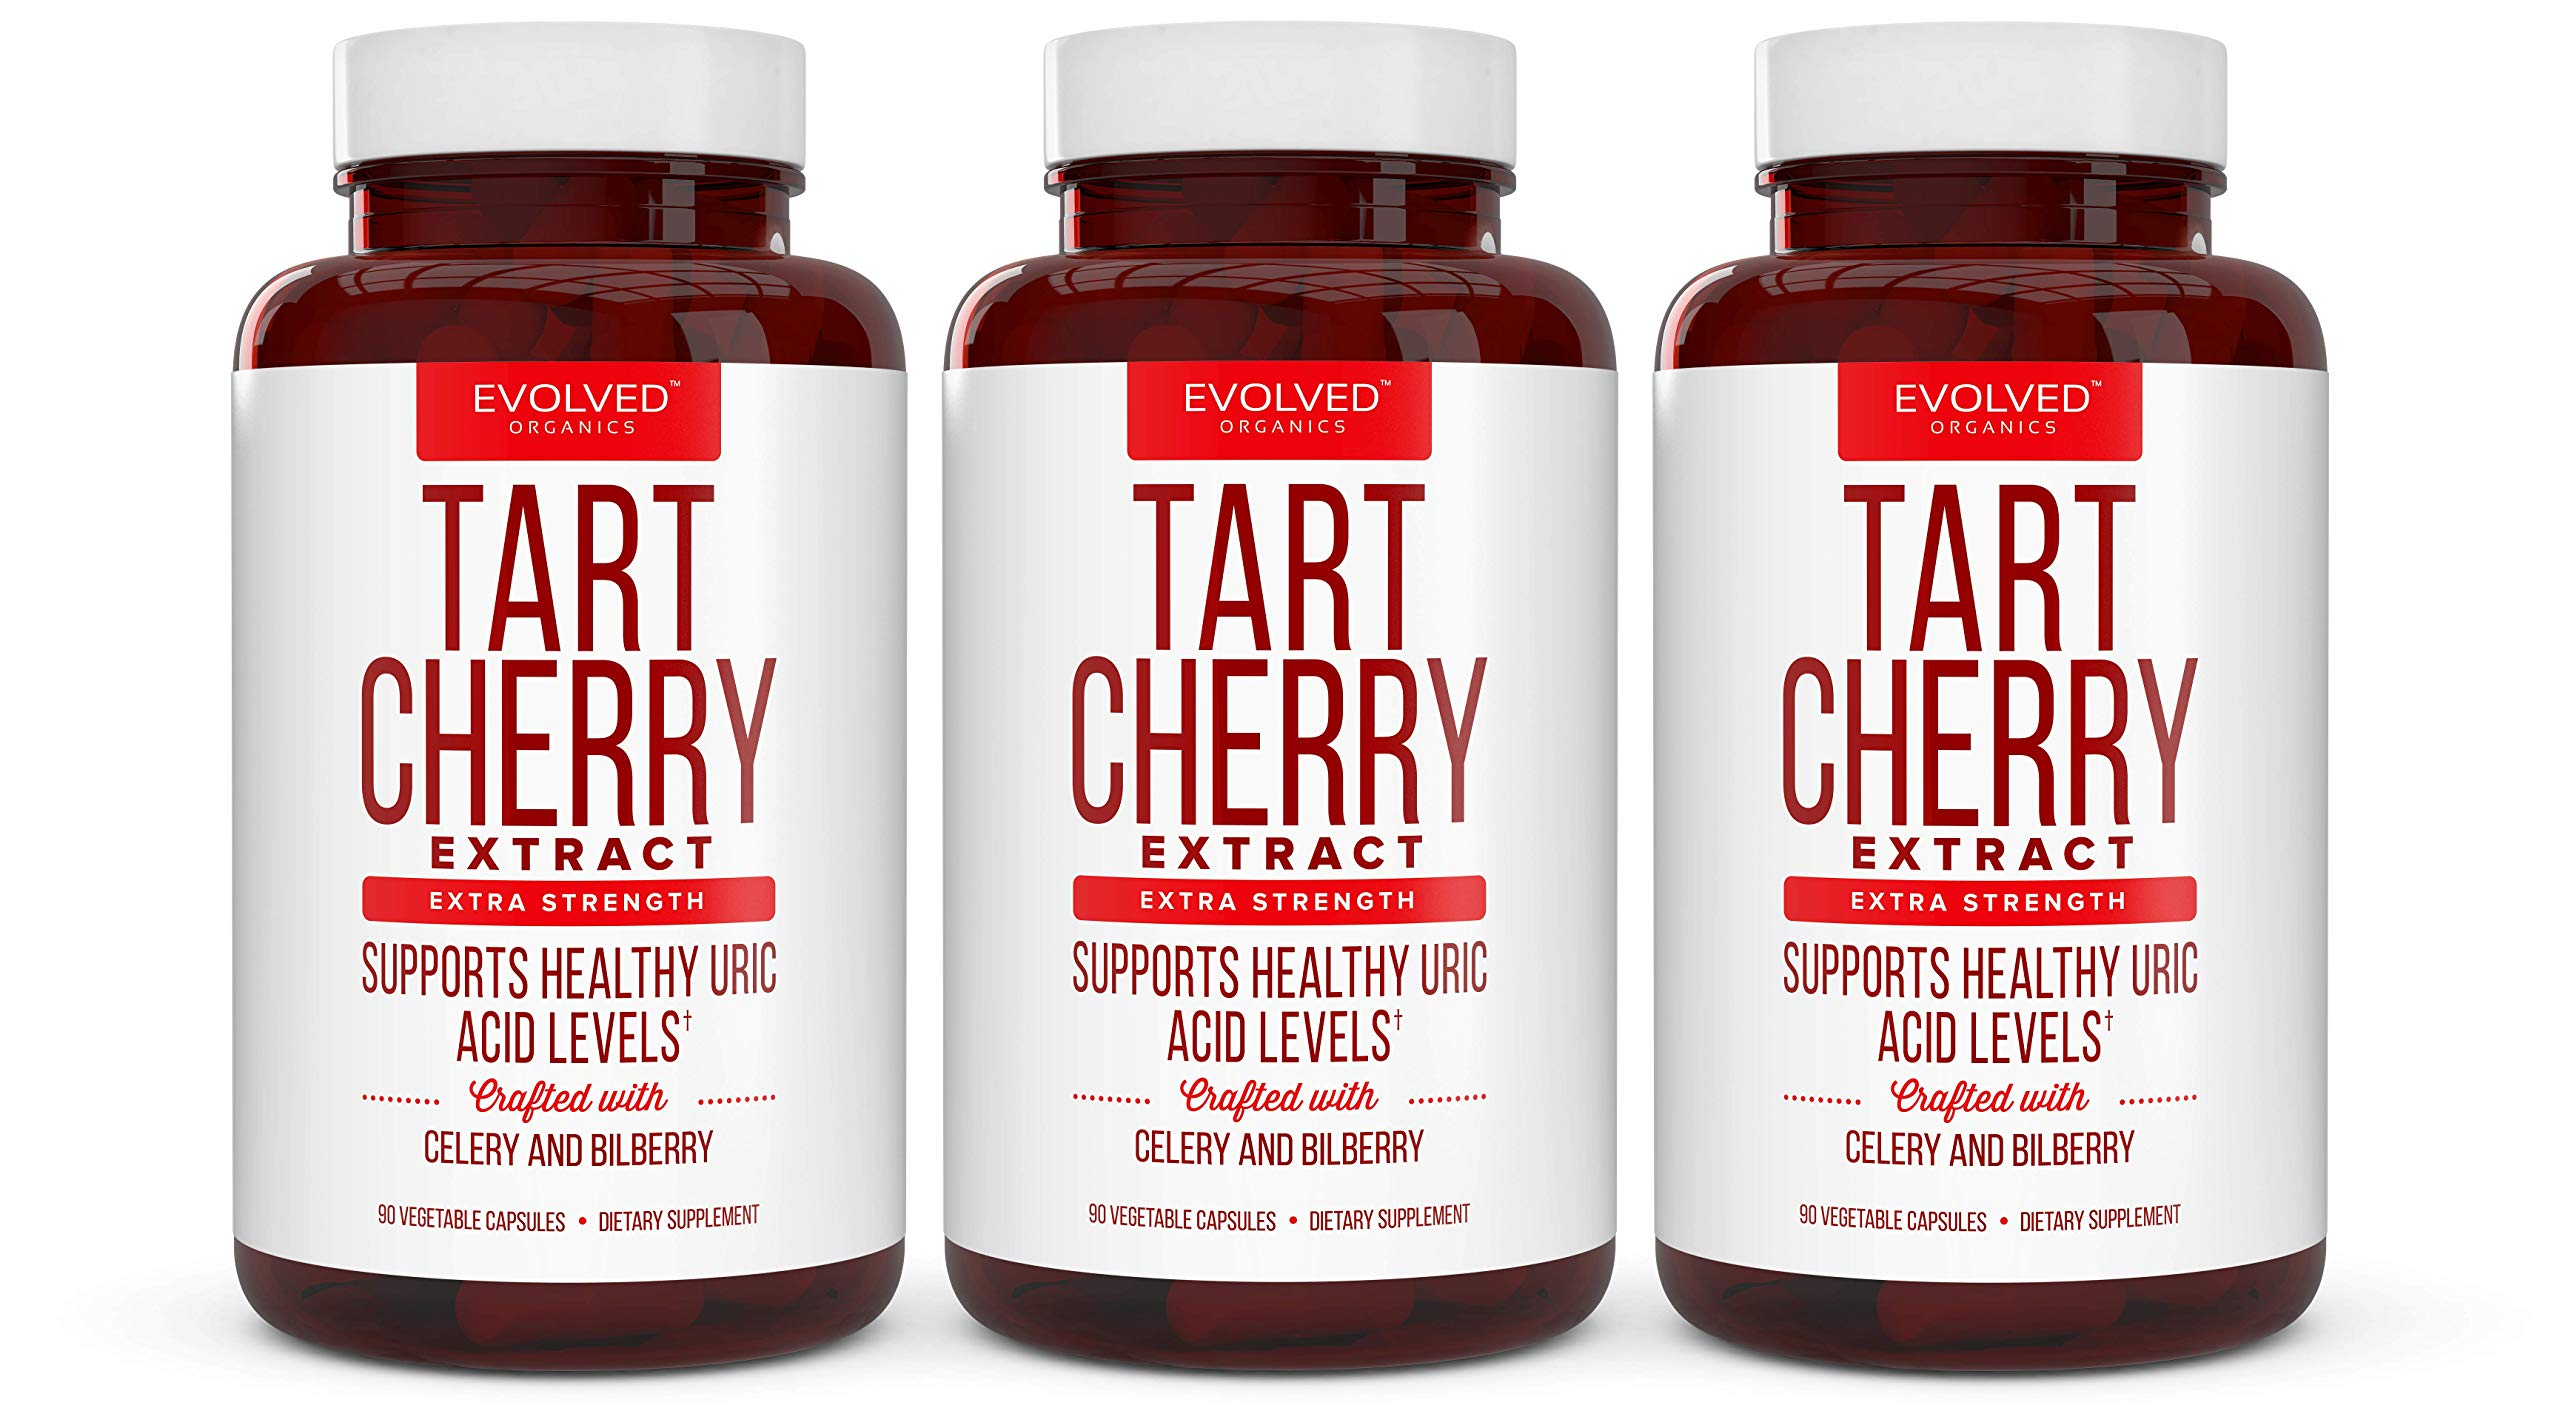 Premium Tart Cherry Extract Plus Celery Seed and Bilberry Extract - Anti Inflammatory, Antioxidant Supplement for Uric Acid, Muscle Pain and Joint Pain - 90 Tart Cherry Capsules​ (3 Pack)